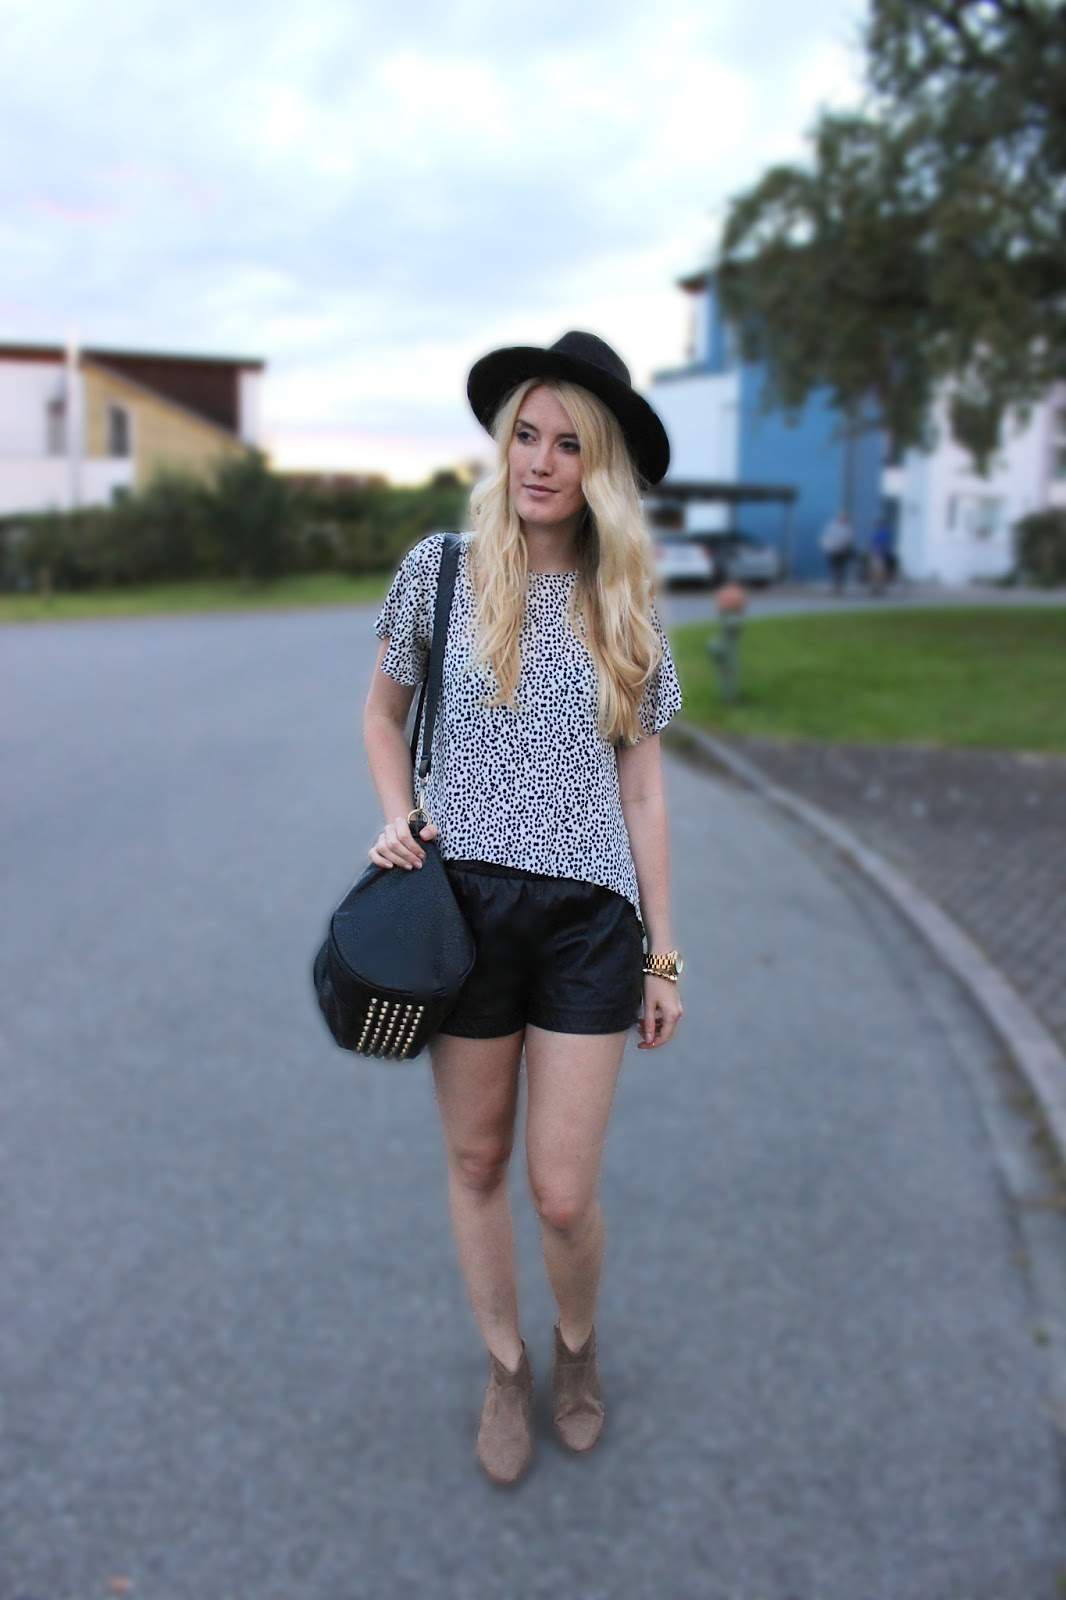 Hut Fedora H&M Outfit TheBlondeLion Dalmatiner Bluse Leather Zara Alexander Wang